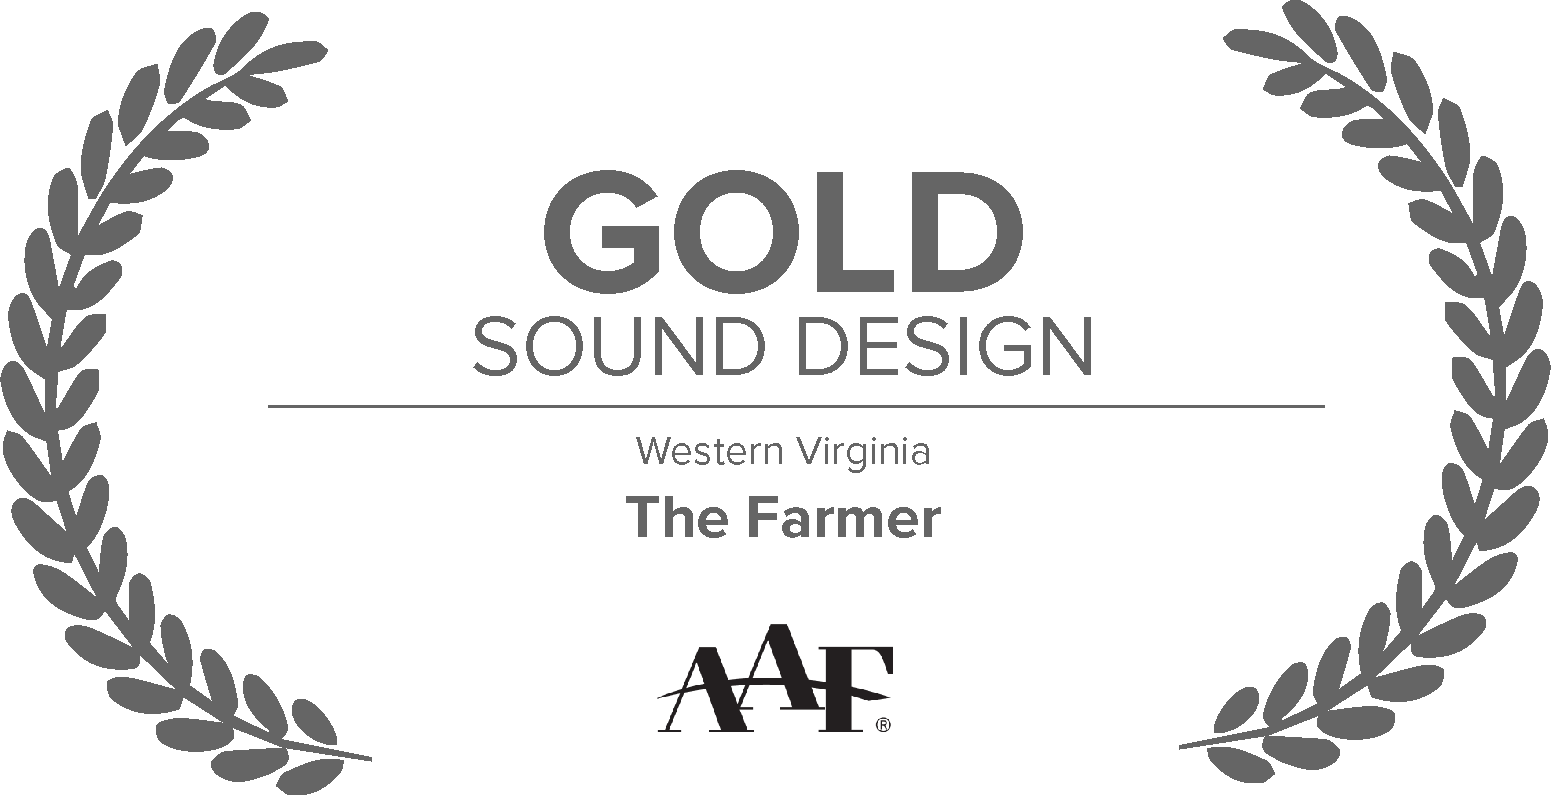 AAF_Gold_sound design @3x.png